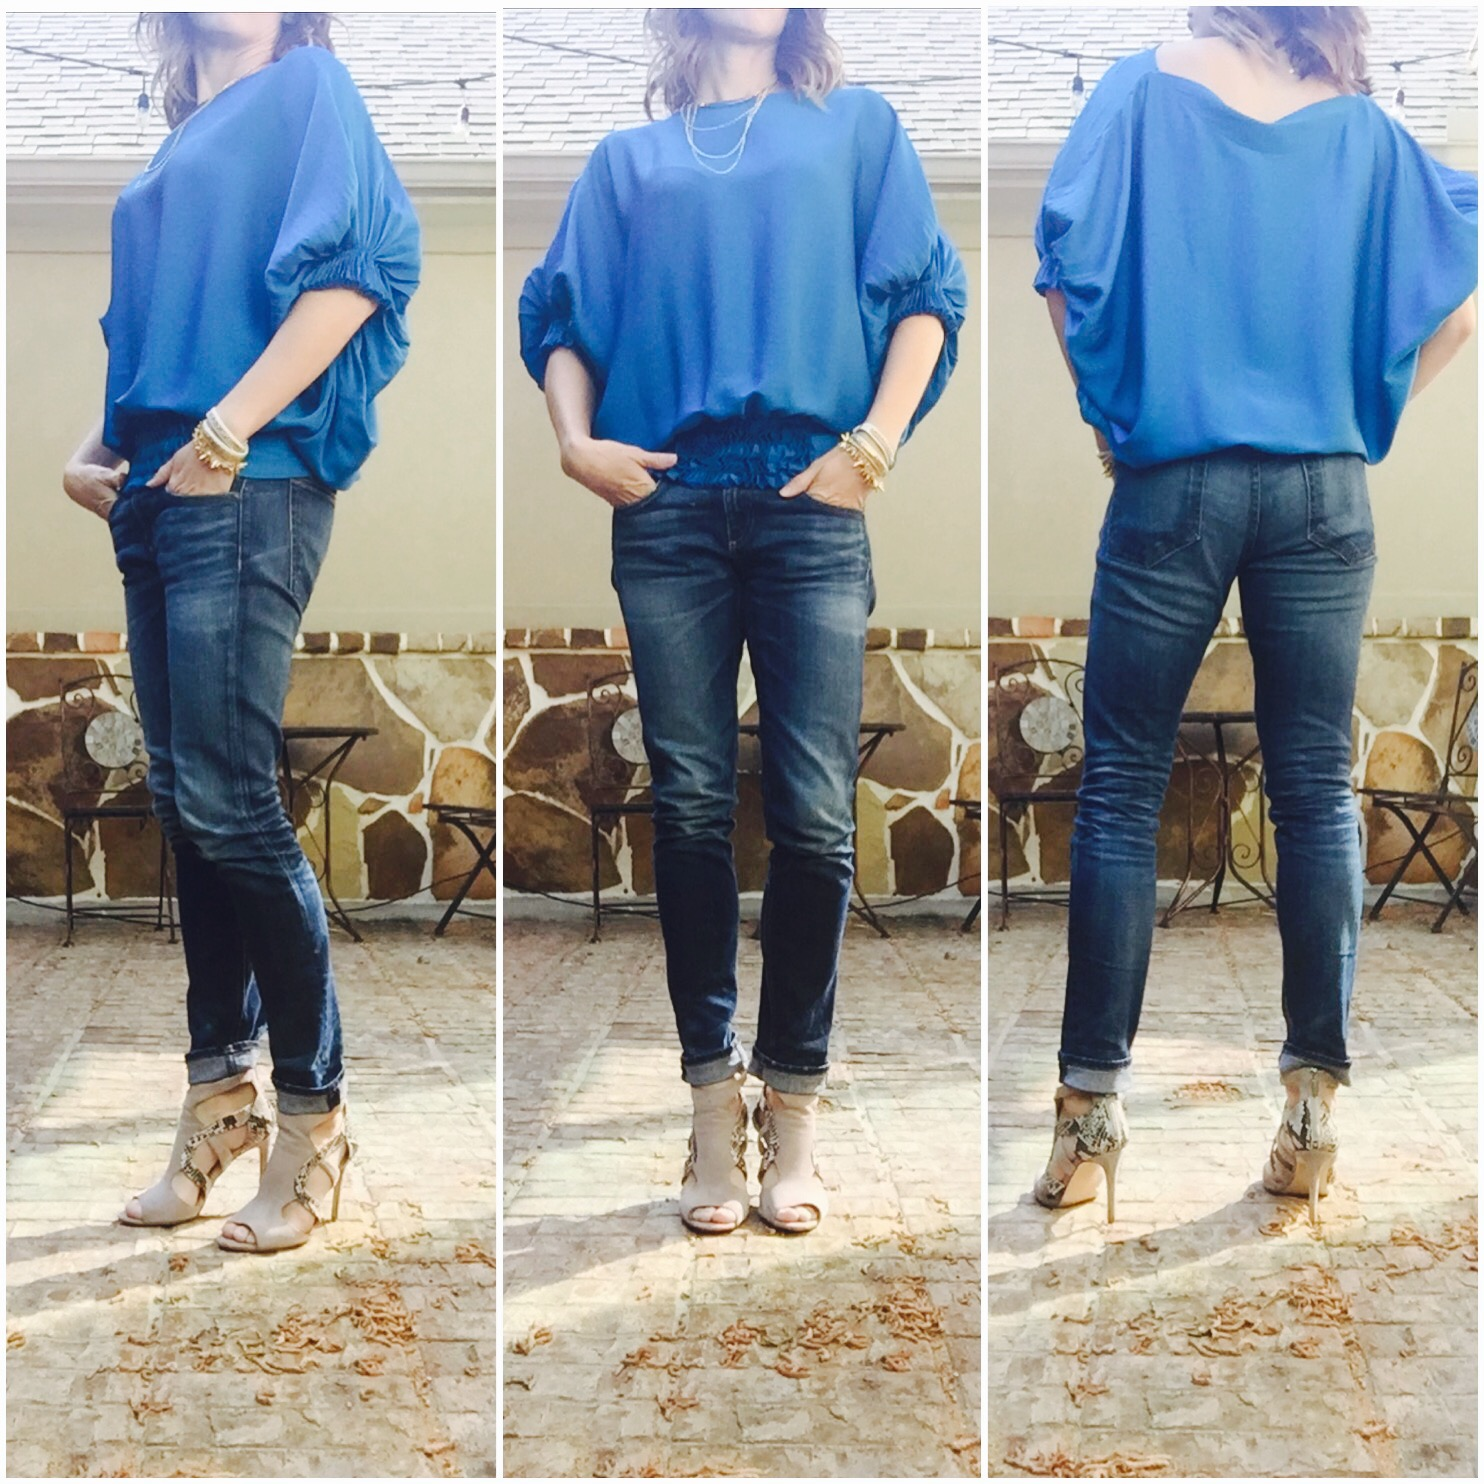 diane von furstenberg, blue, blouse, everyday style, method39, style advisor, how to wear it